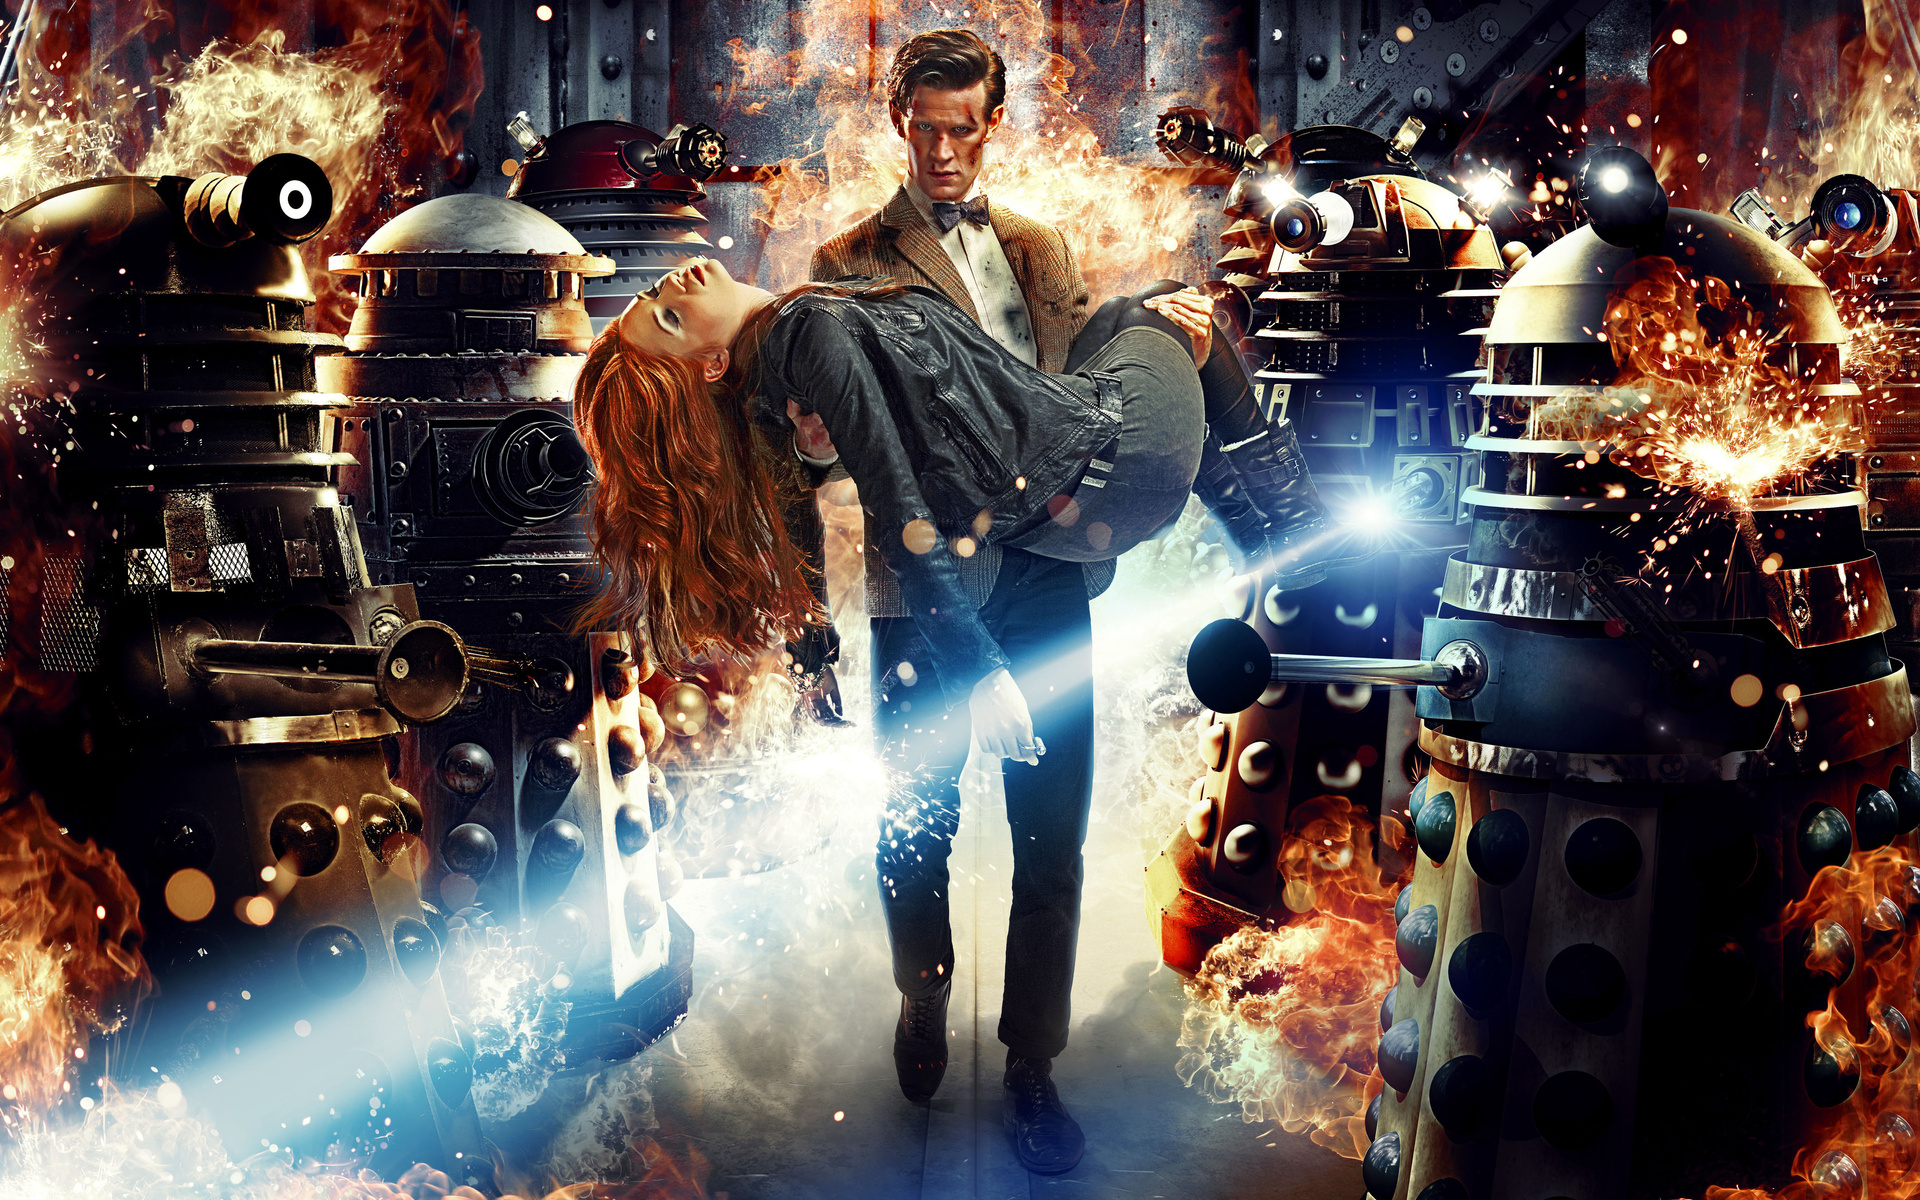 Sci Fi Doctor : Doctor who matt smith daleks sci fi science fiction action